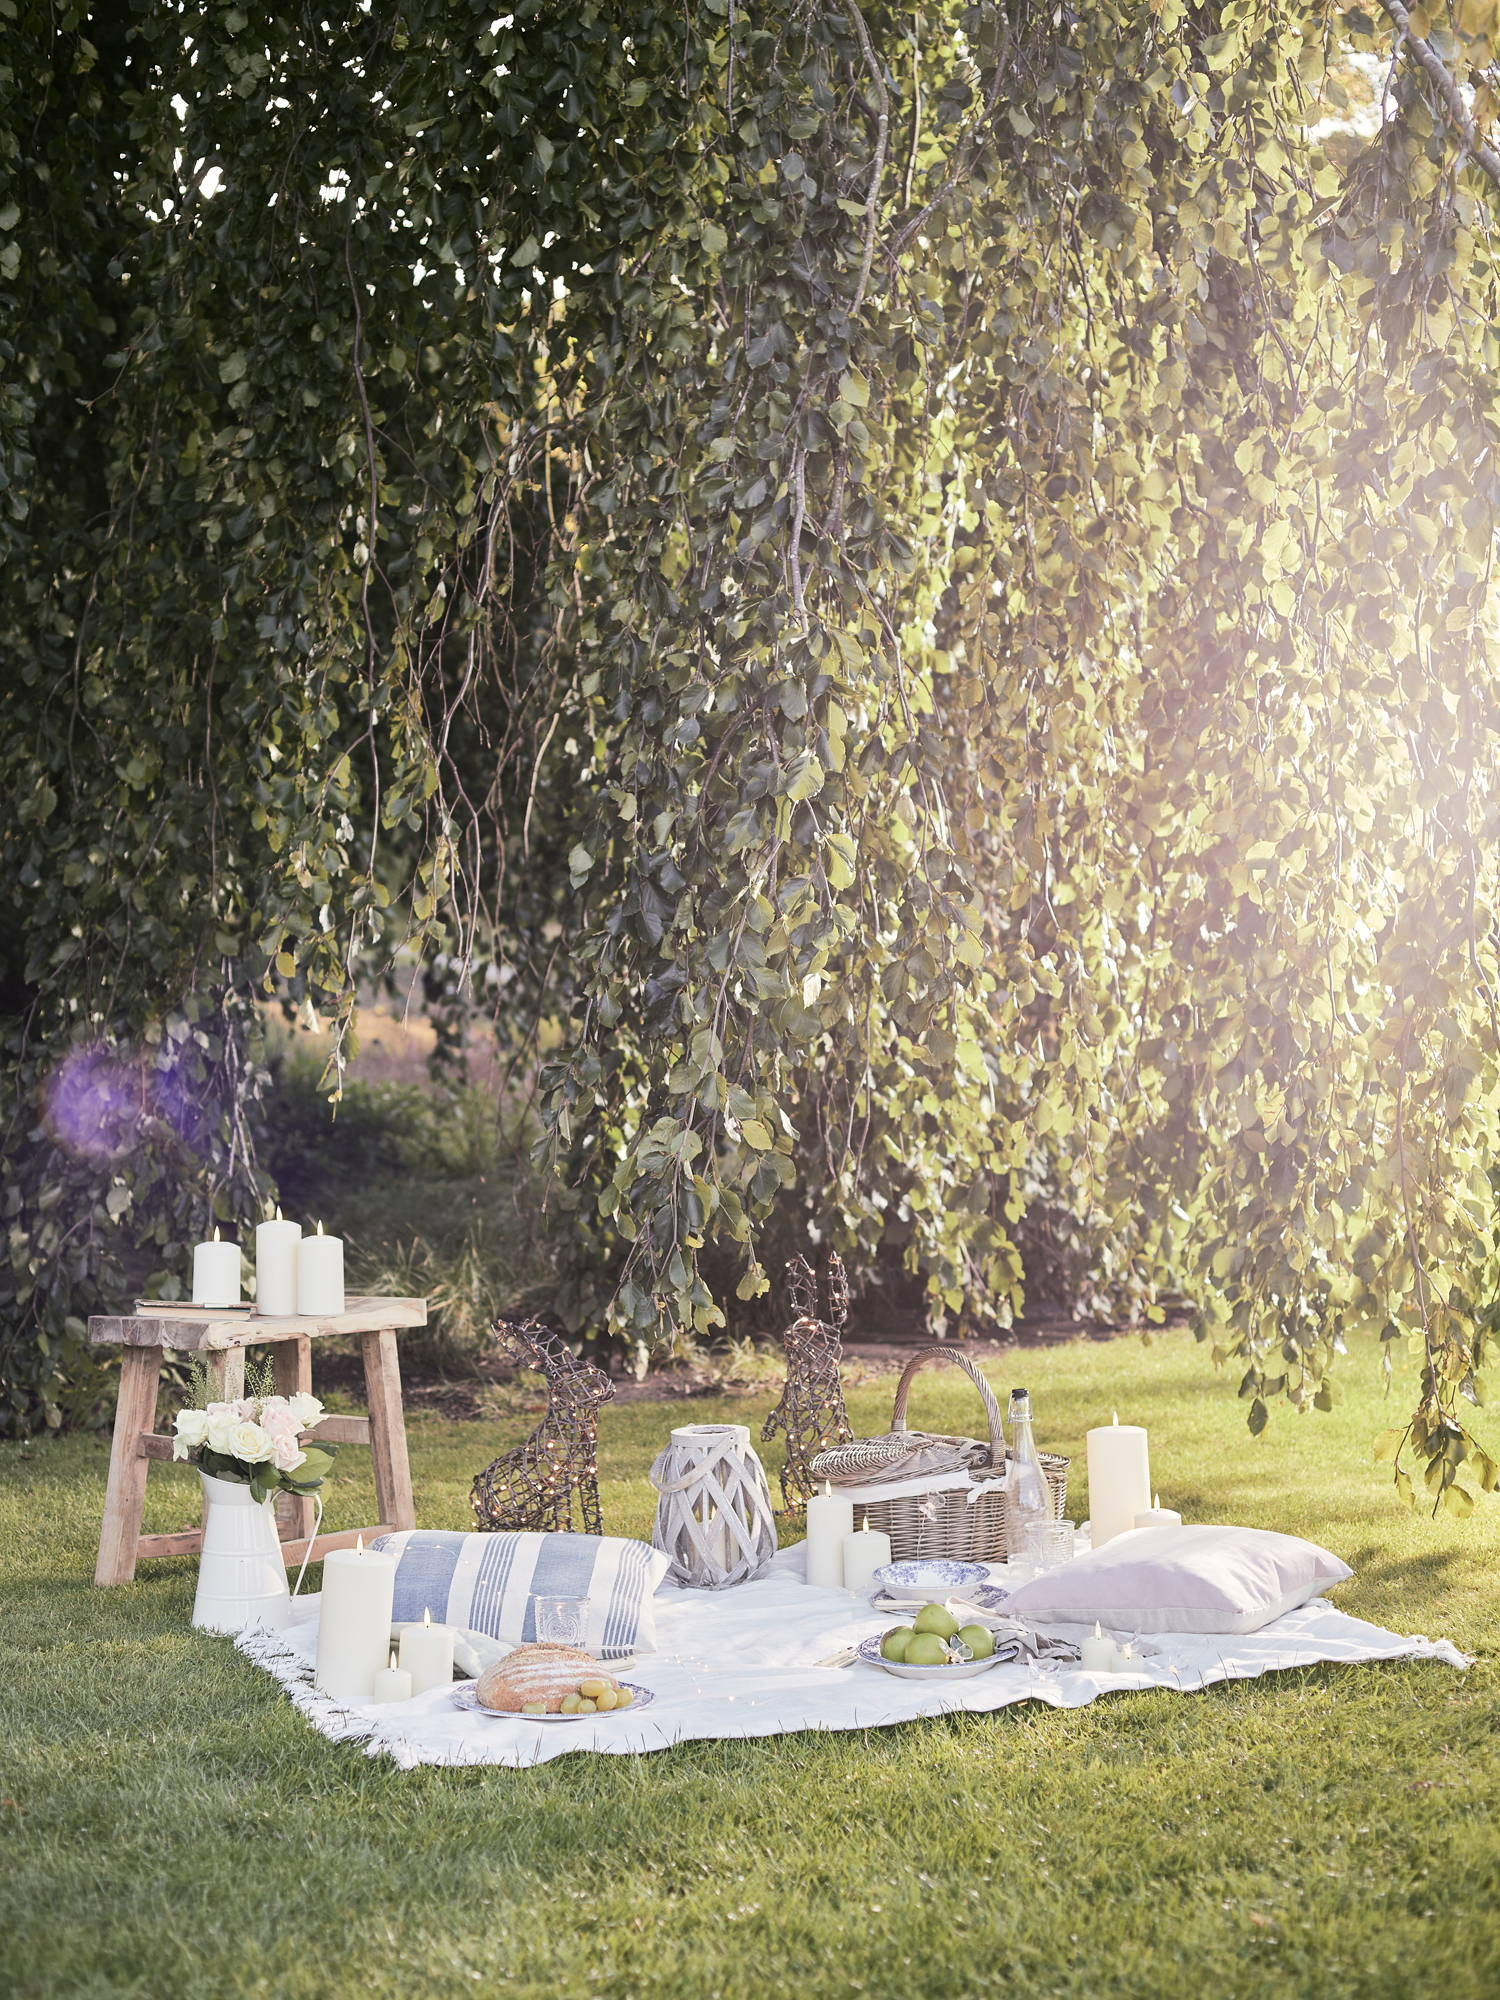 Spring picnic setting in garden with outdoor candles and lanterns